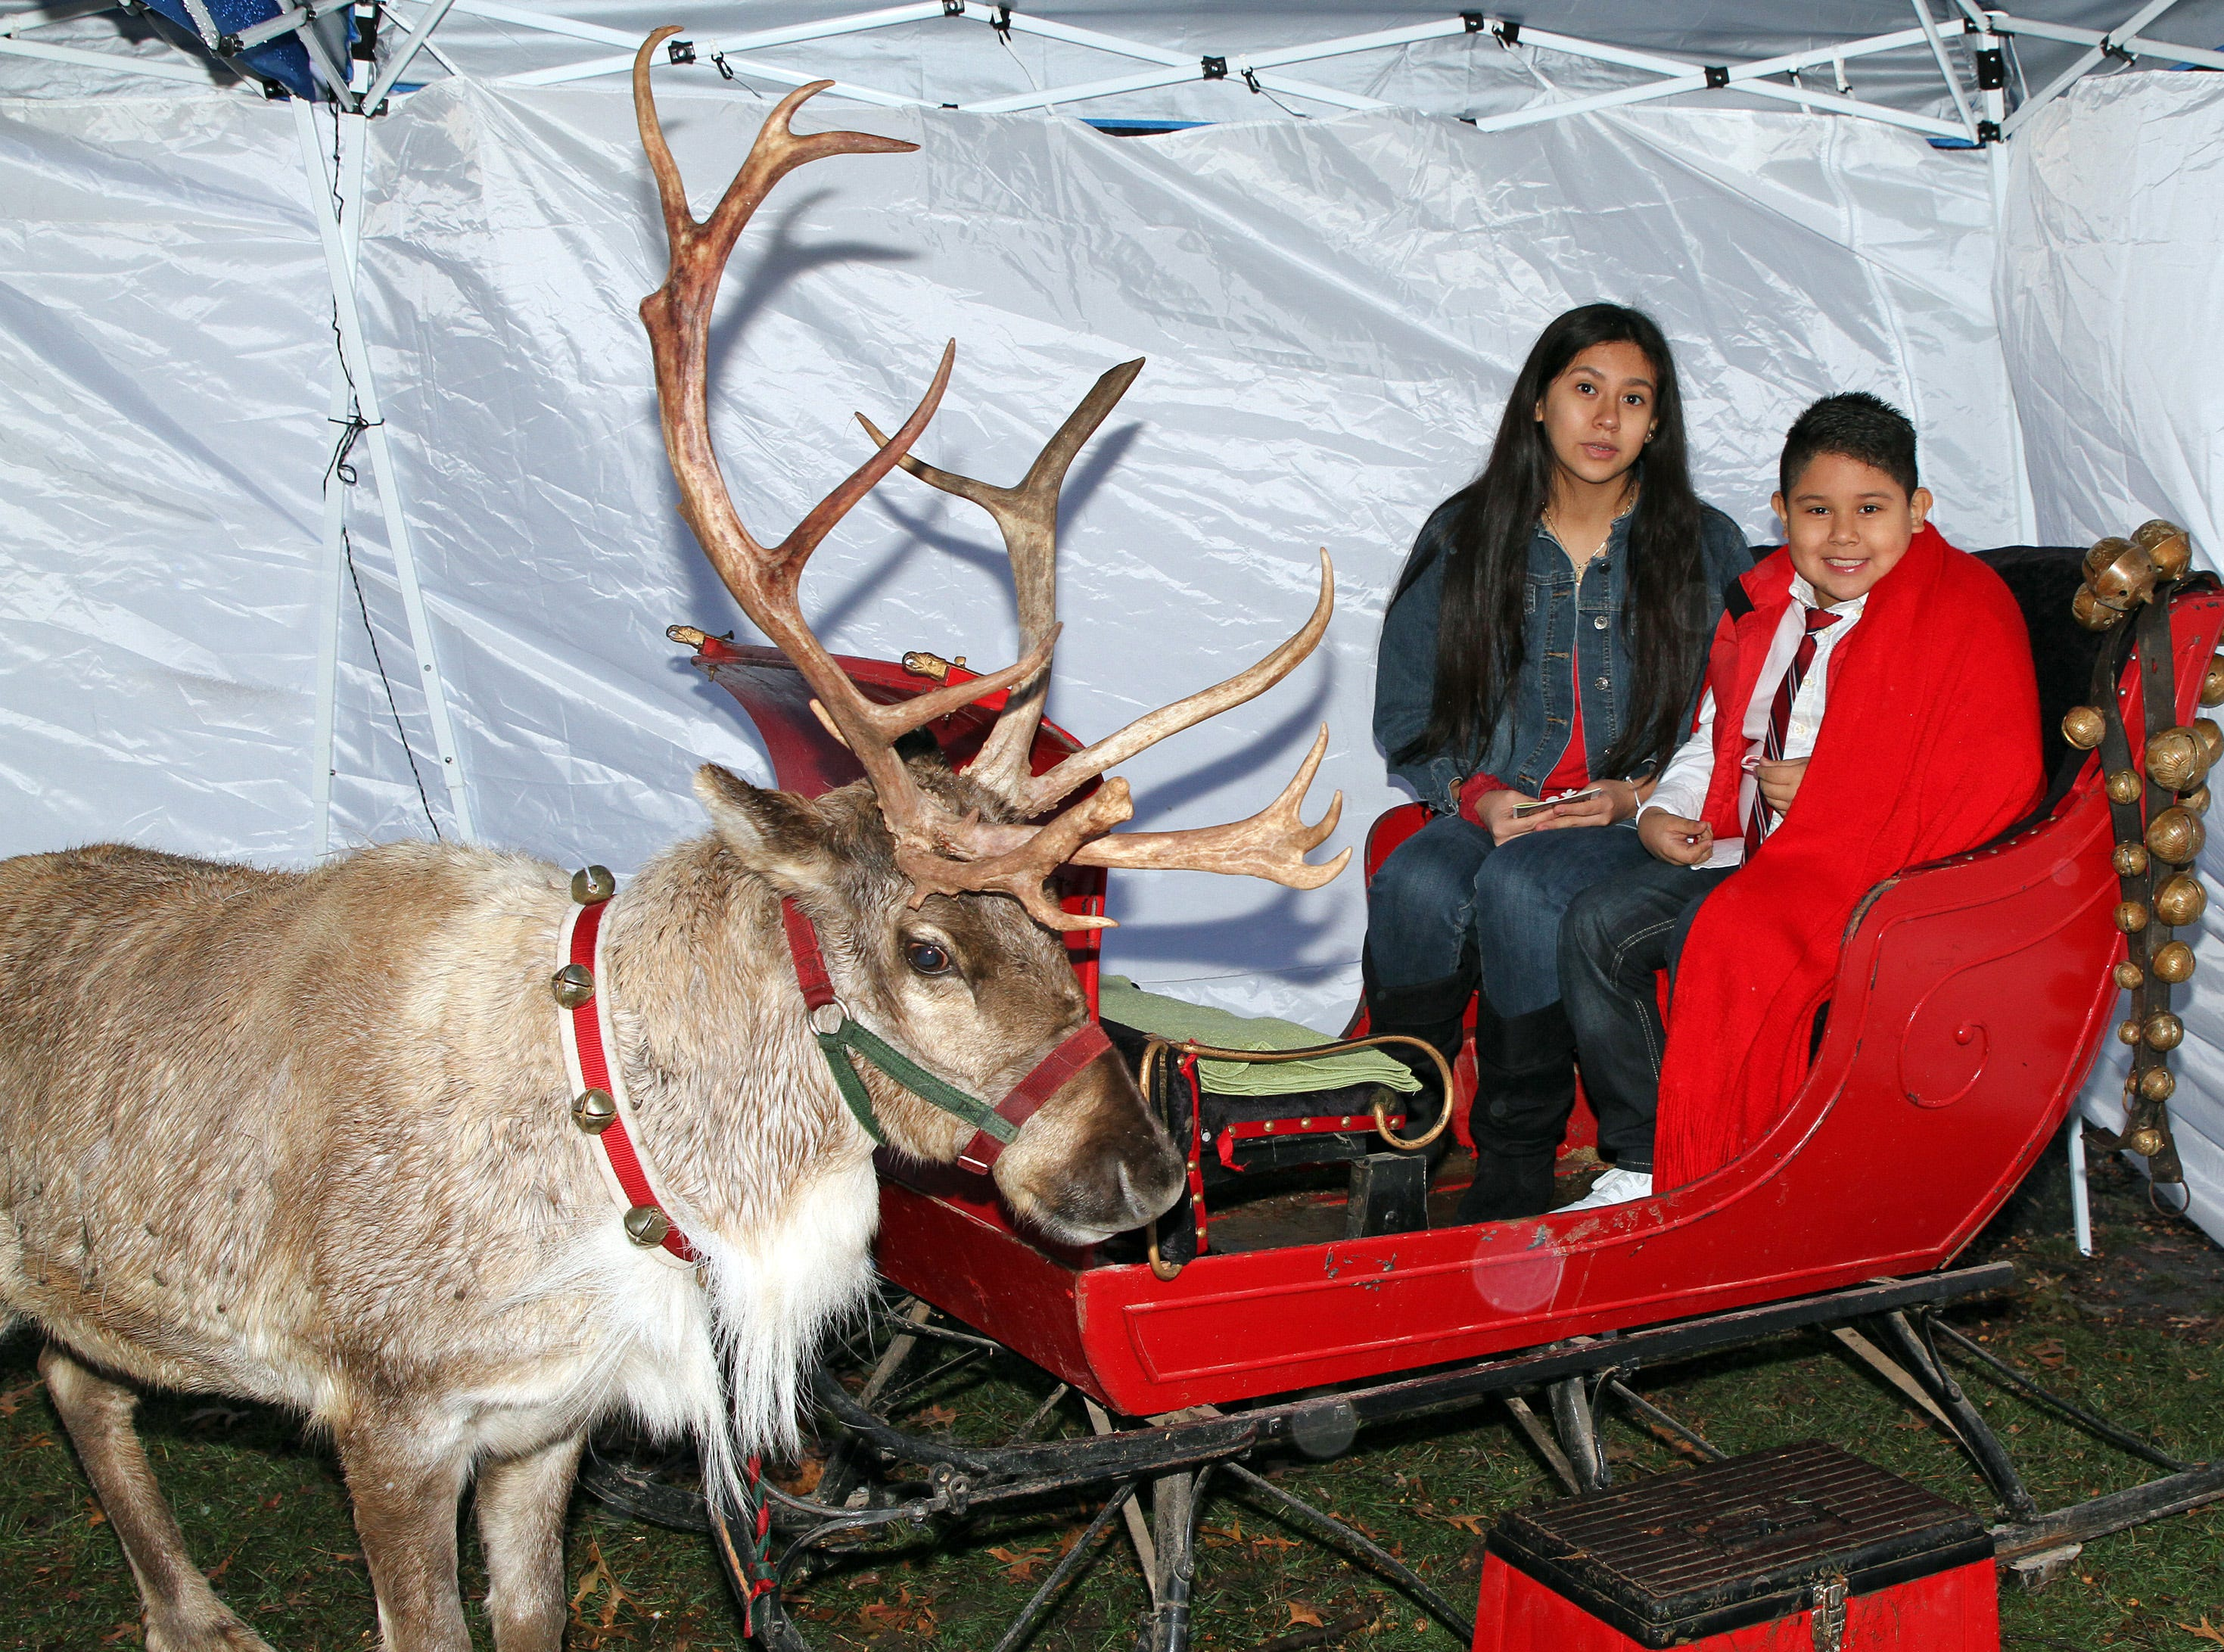 Woody the Reindeer stops for a photo with Alonda, 16, and Steven Luna, 8, of Urbandale during UCAN's third annual Light Up Urbandale on Sunday, Dec. 2, 2018 at Lions Park in Urbandale.